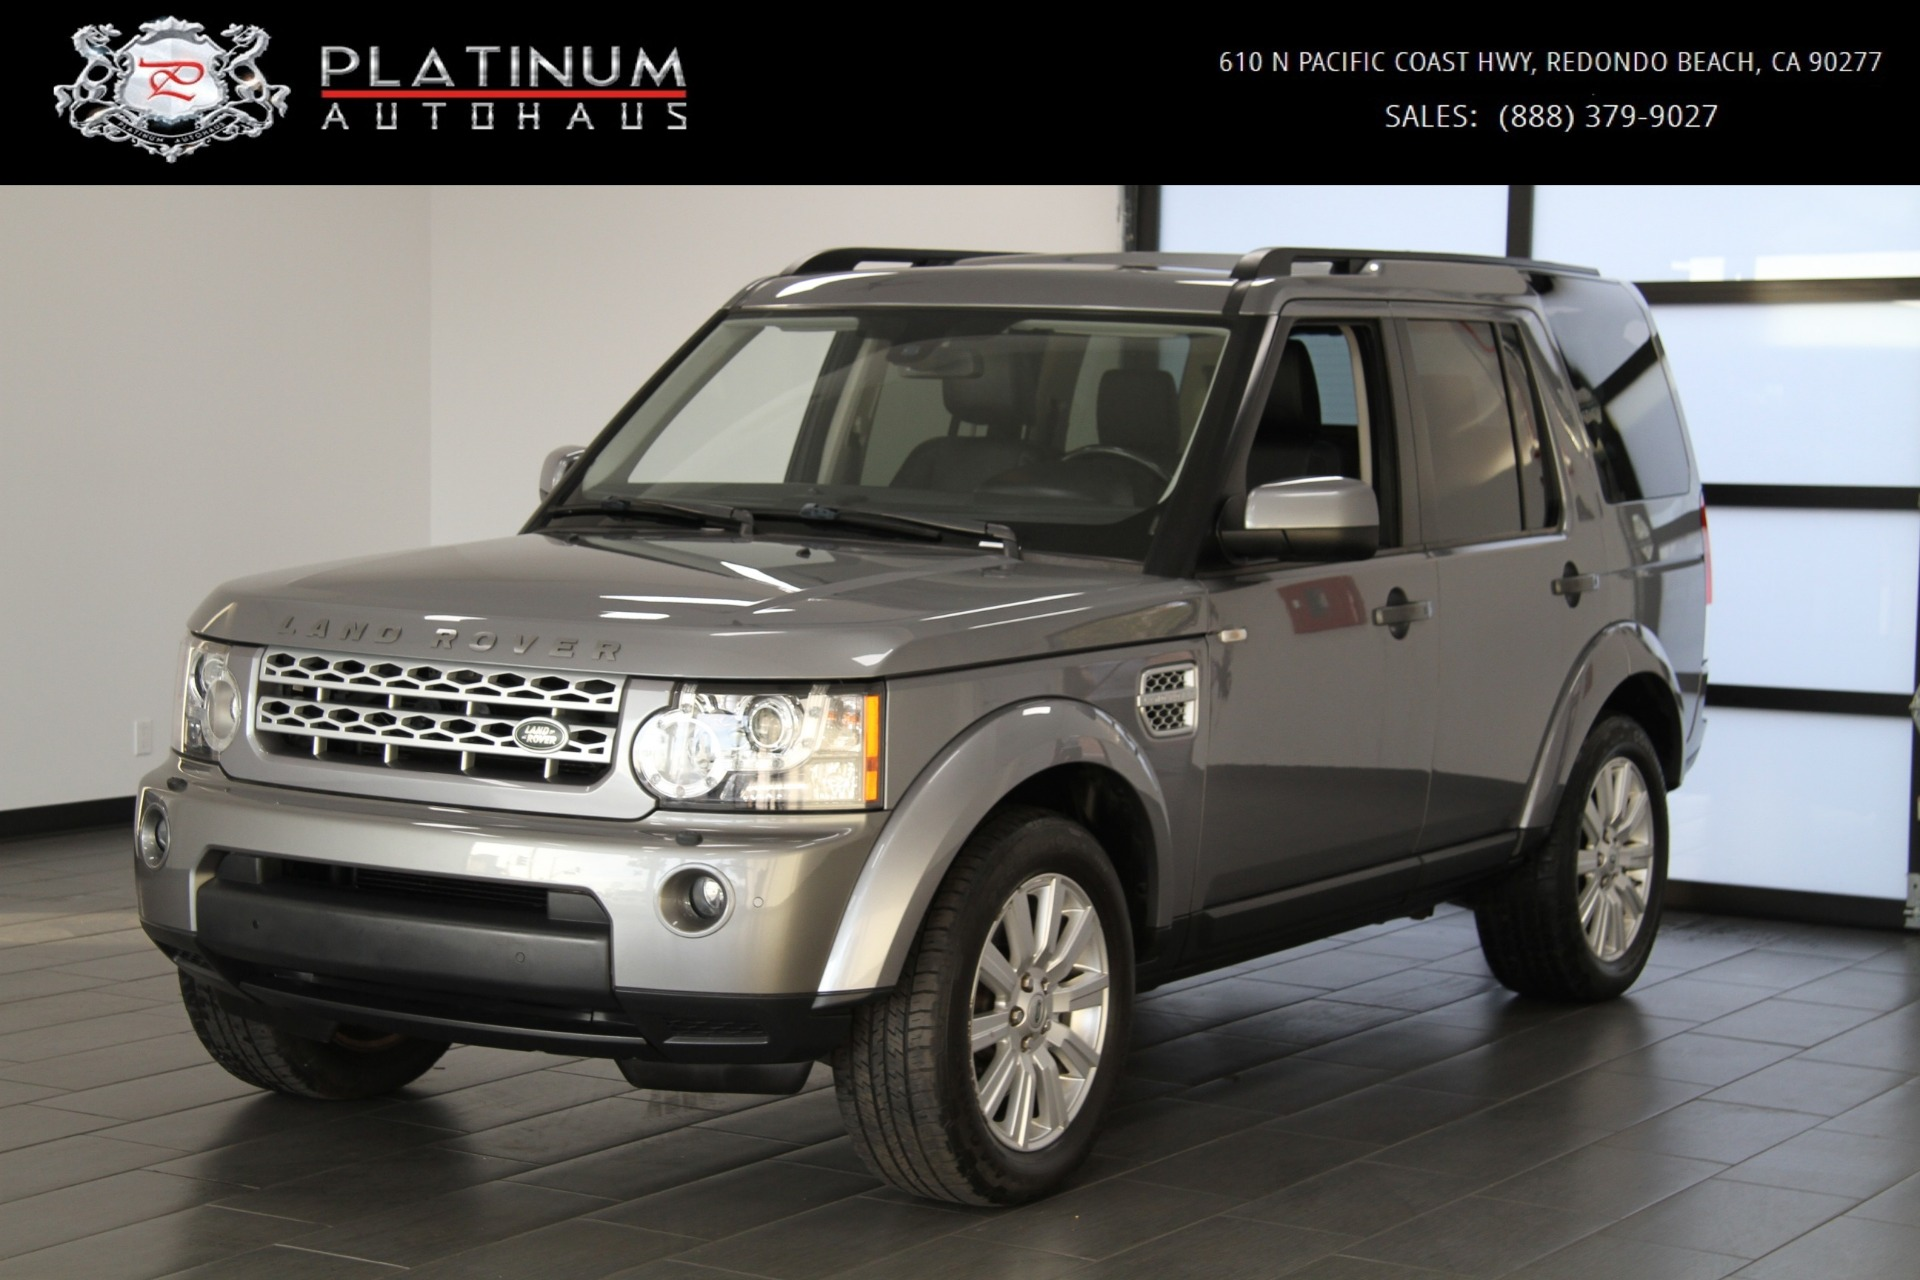 2012 land rover lr4 hse lux stock 6105 for sale near redondo beach ca ca land rover dealer - Land rover garage near me ...